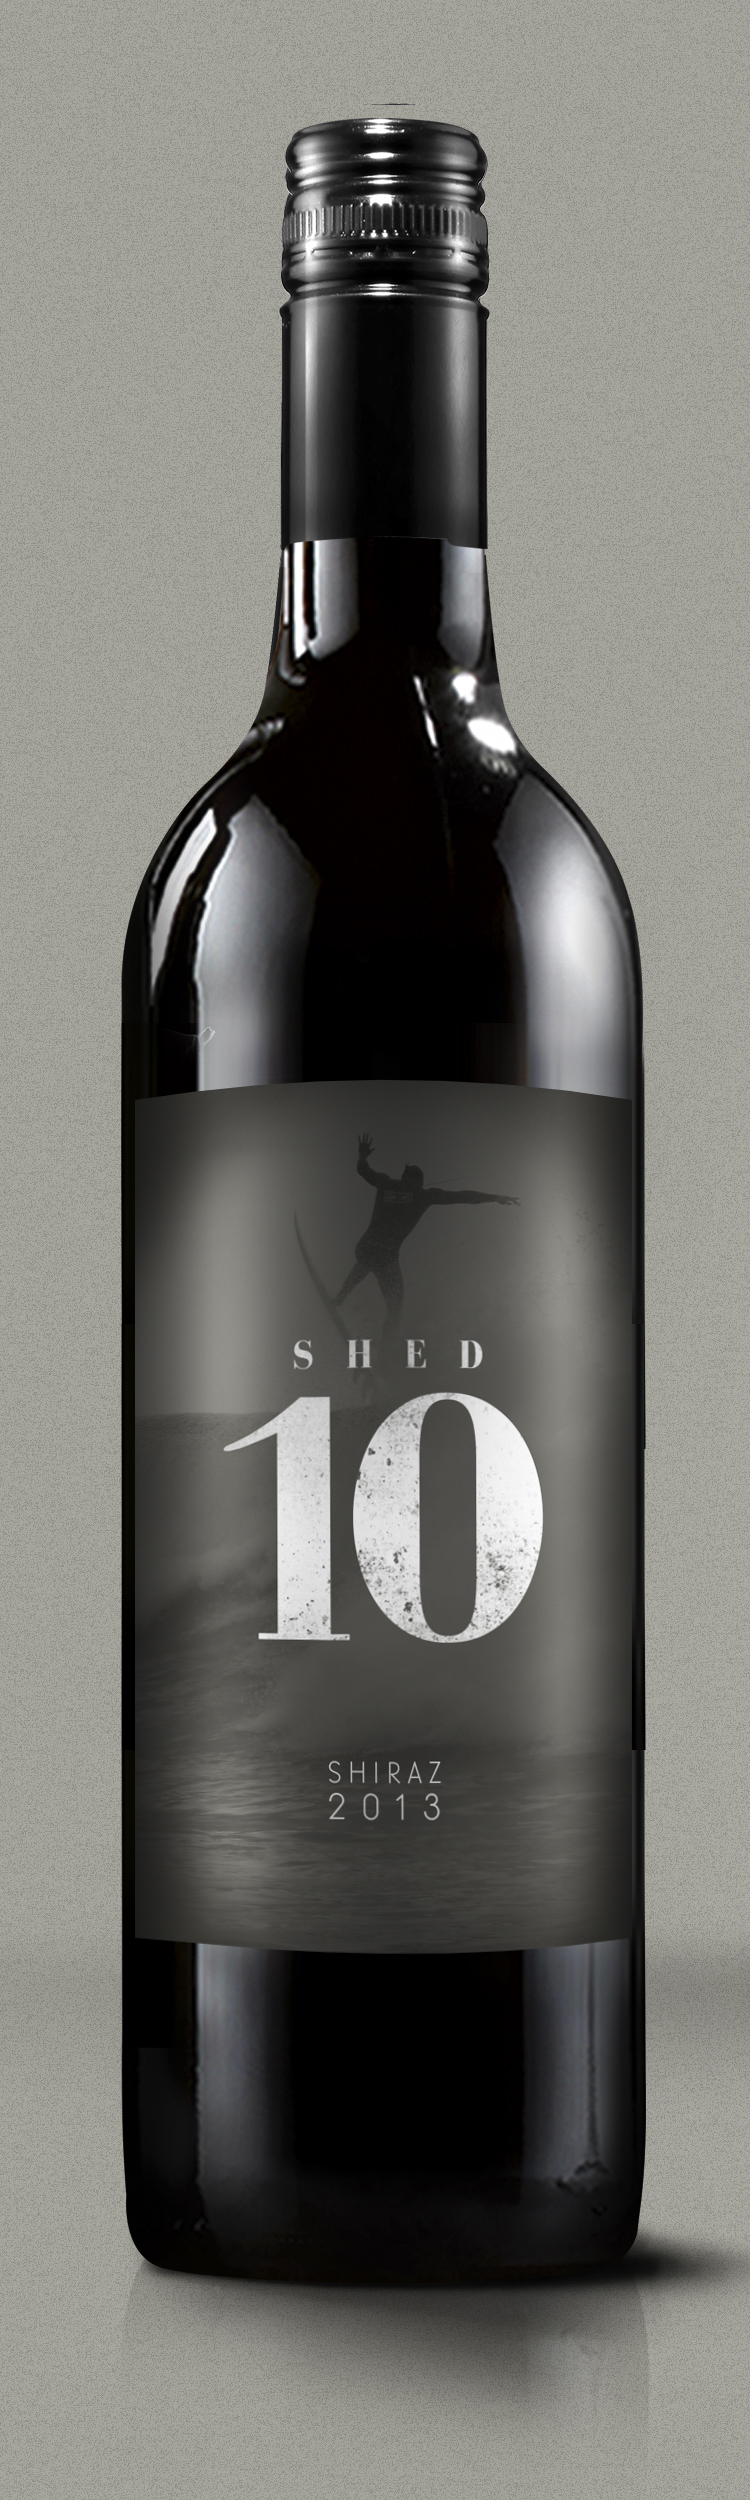 Shed_10_label_bottleshot_2.jpg